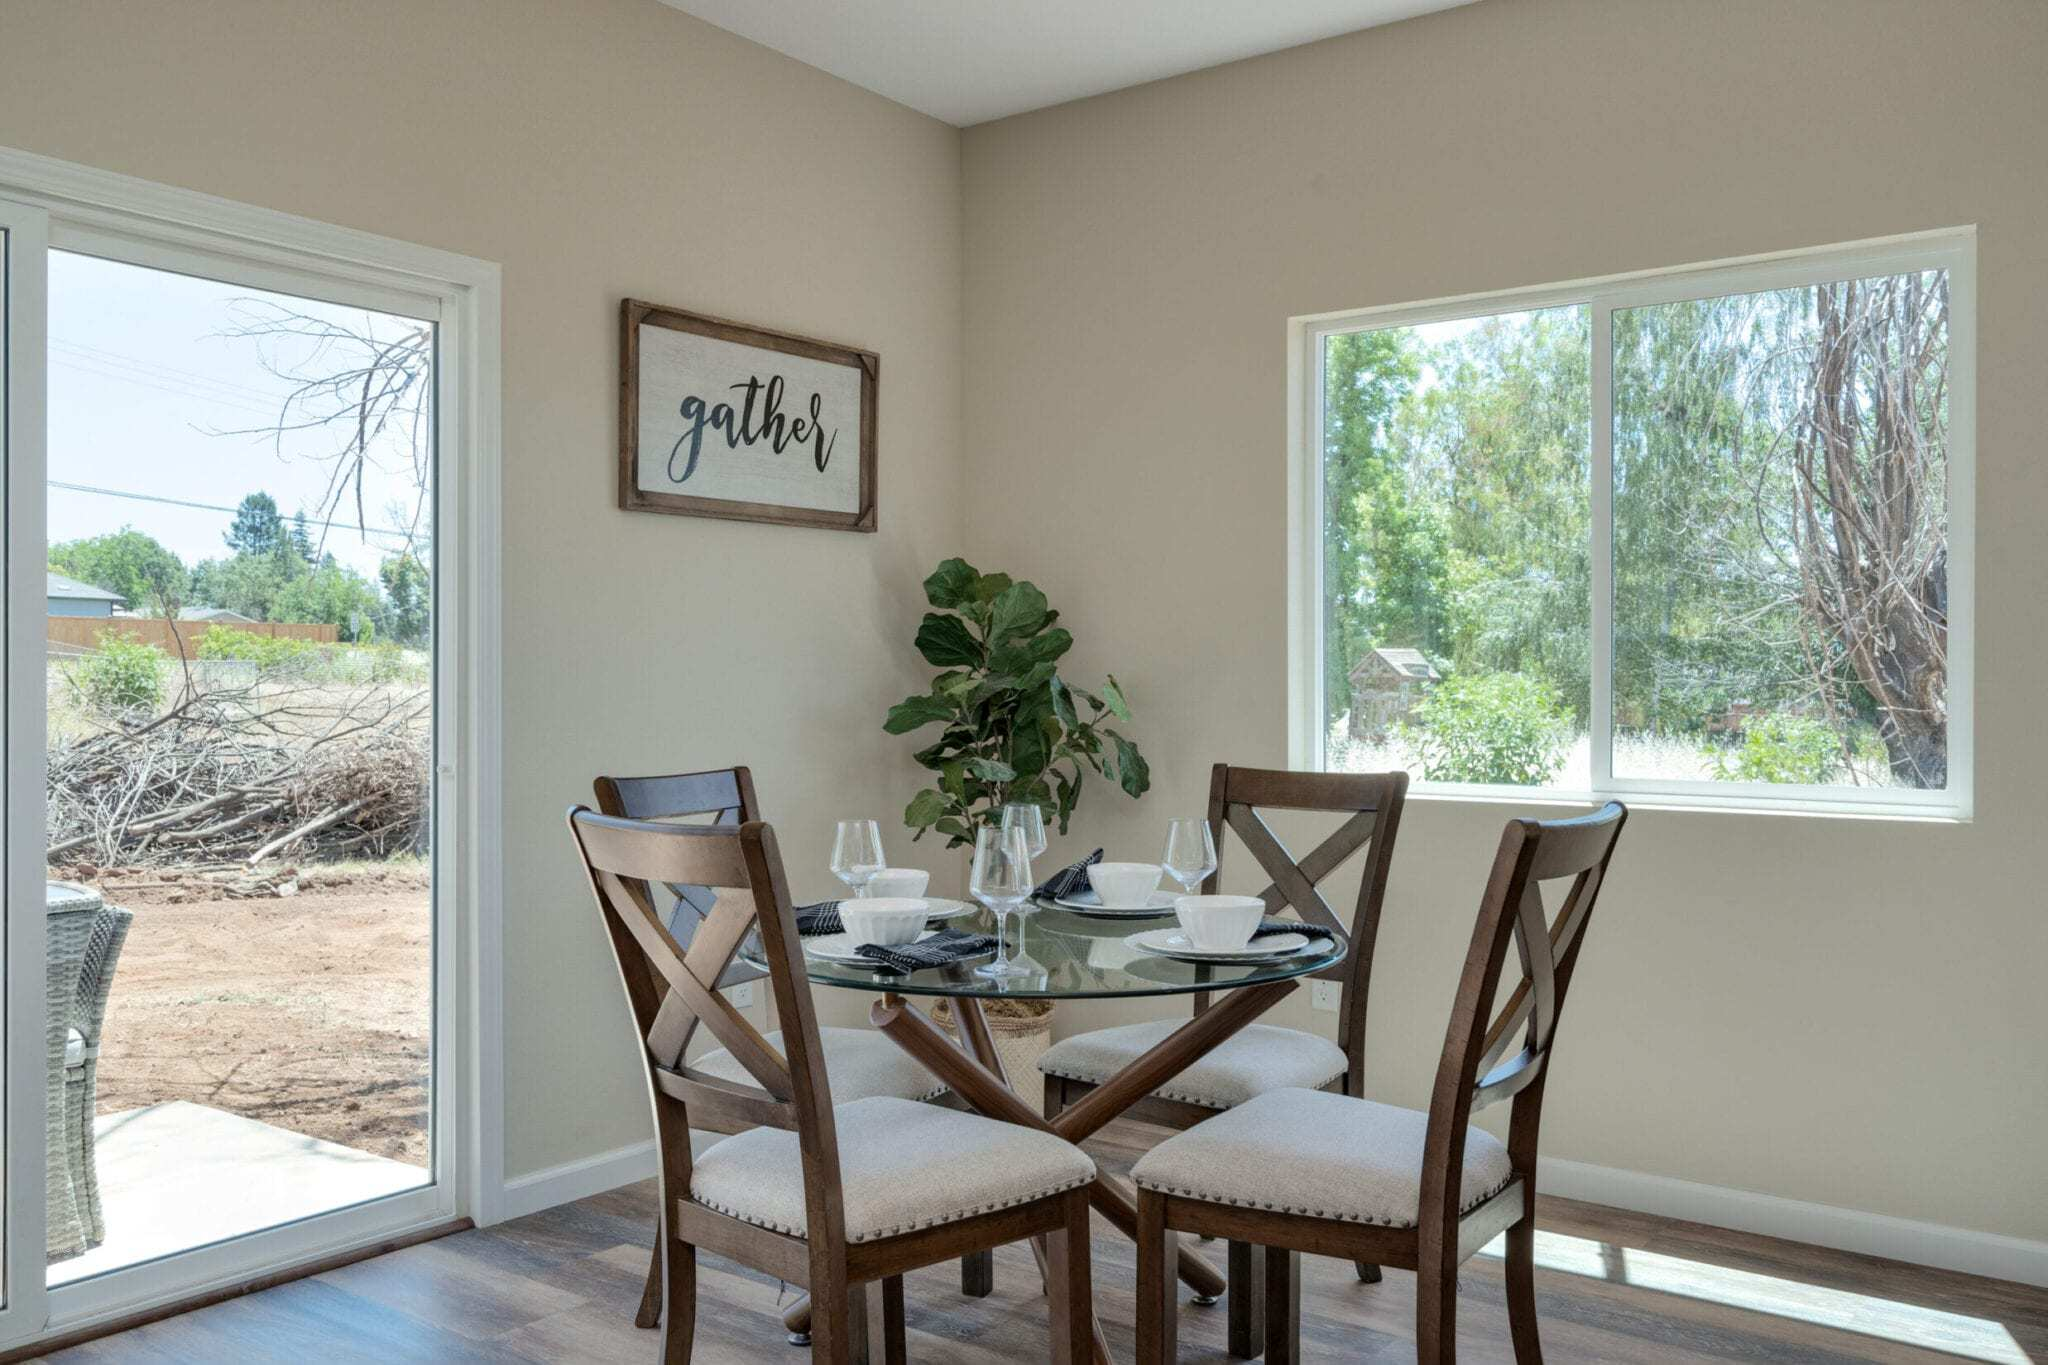 Kitchen featured in the 1488 Bille Rd By Silvermark Luxury Homes in Chico, CA